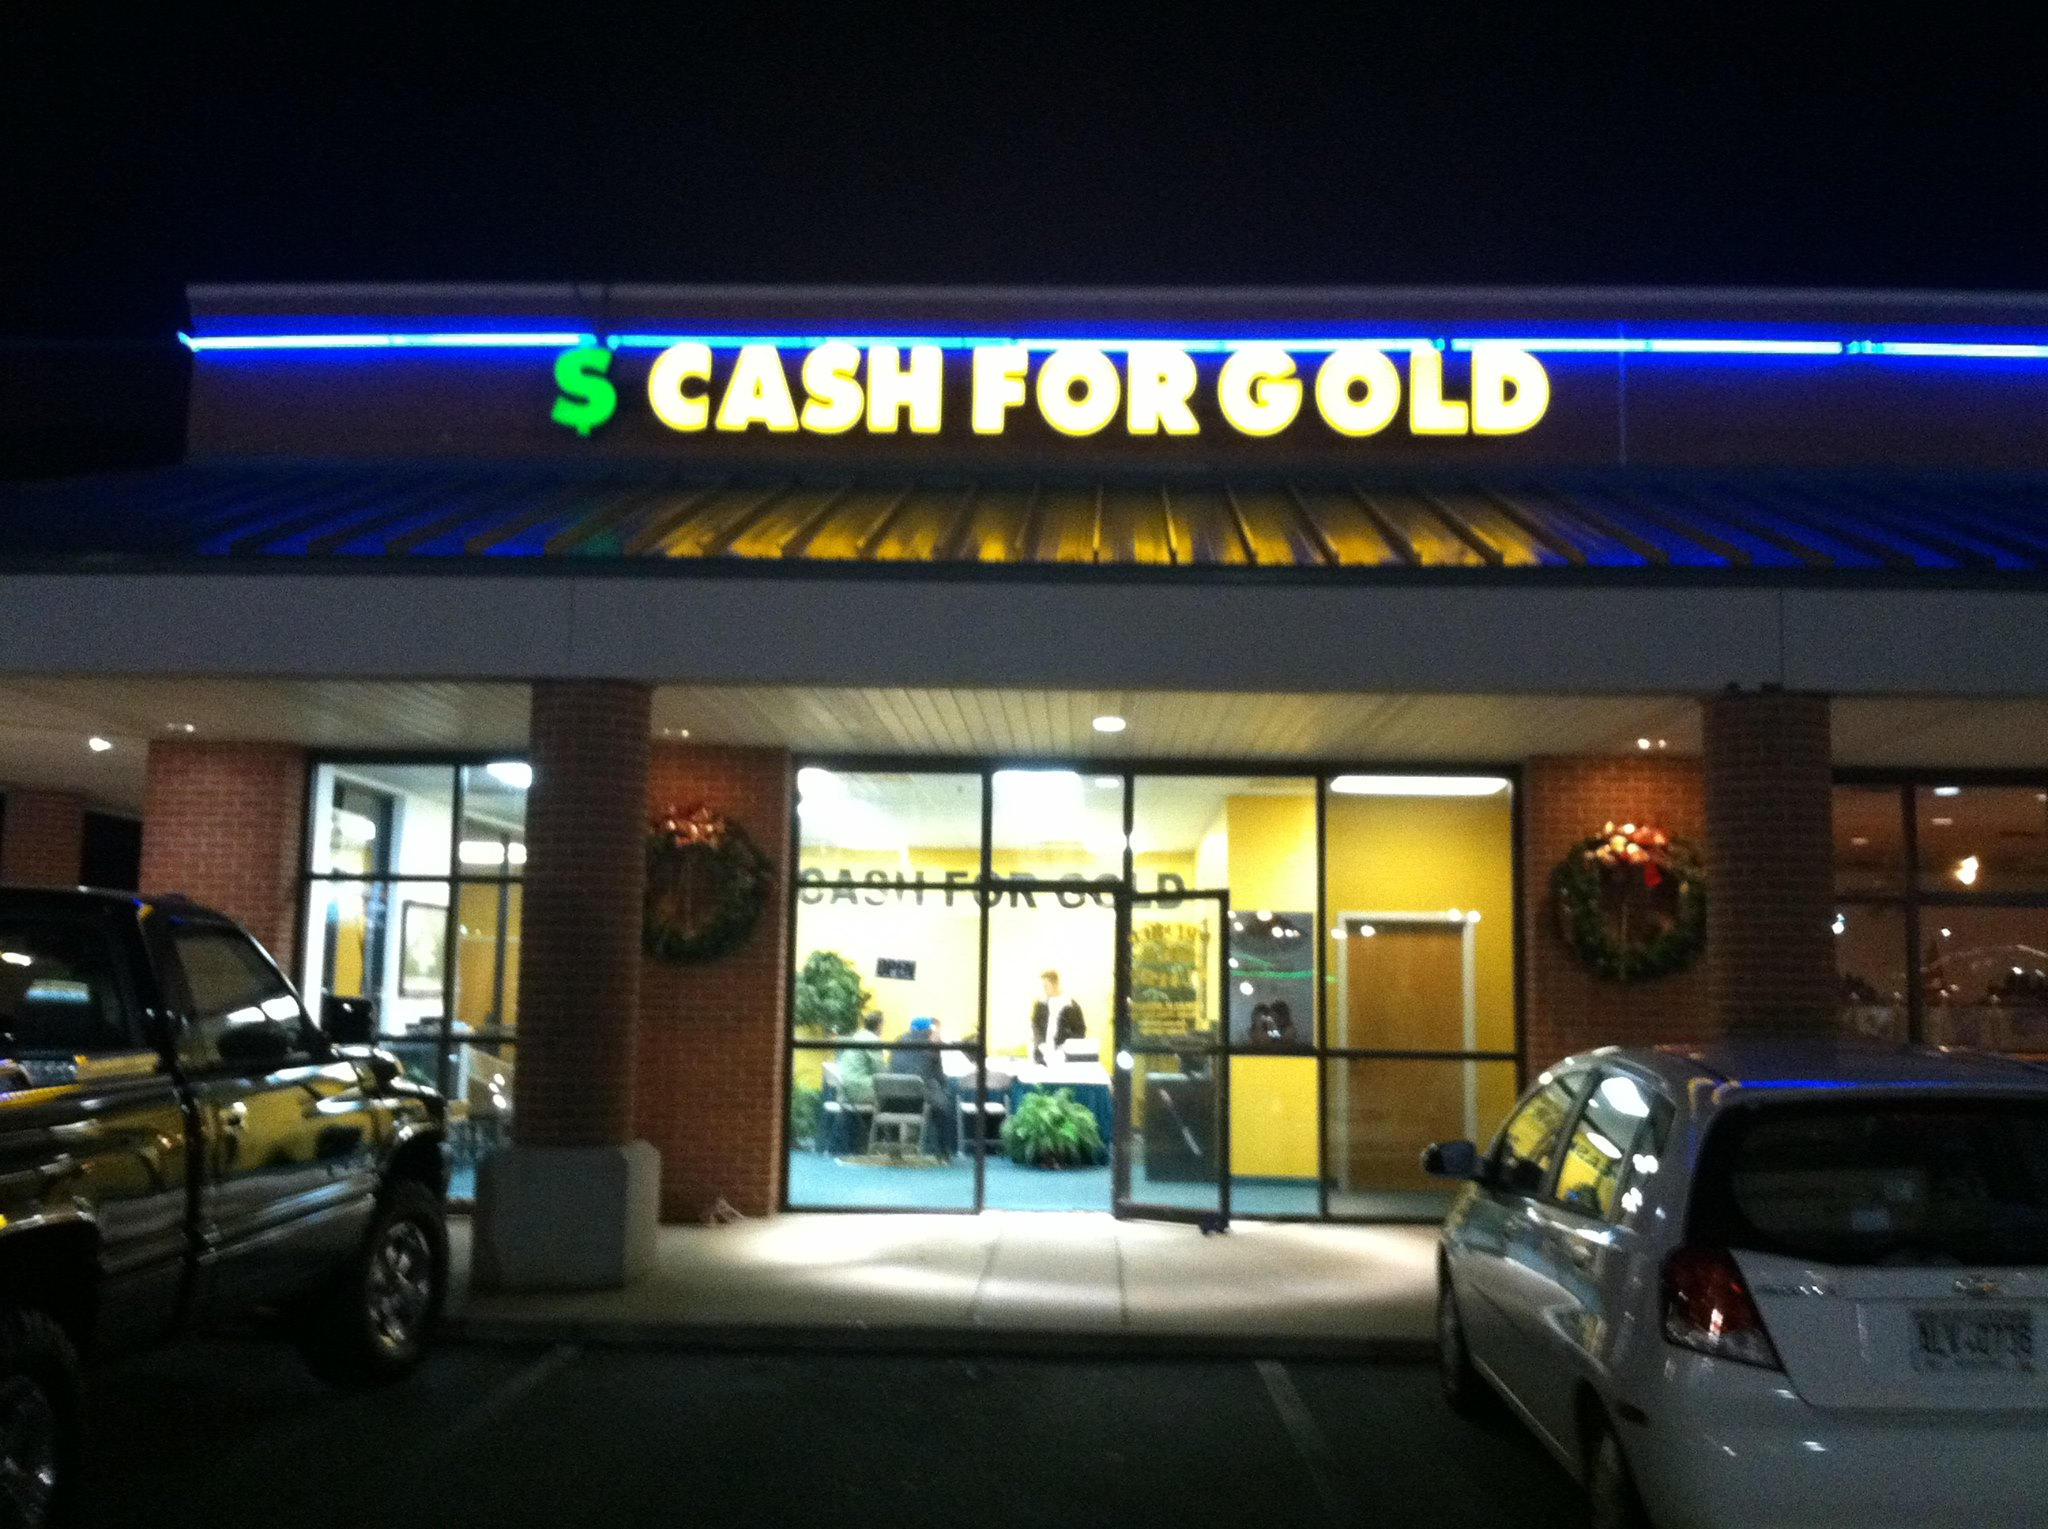 Cash For Gold Amp Pawn 1403 N Expressway Ste E Griffin Ga